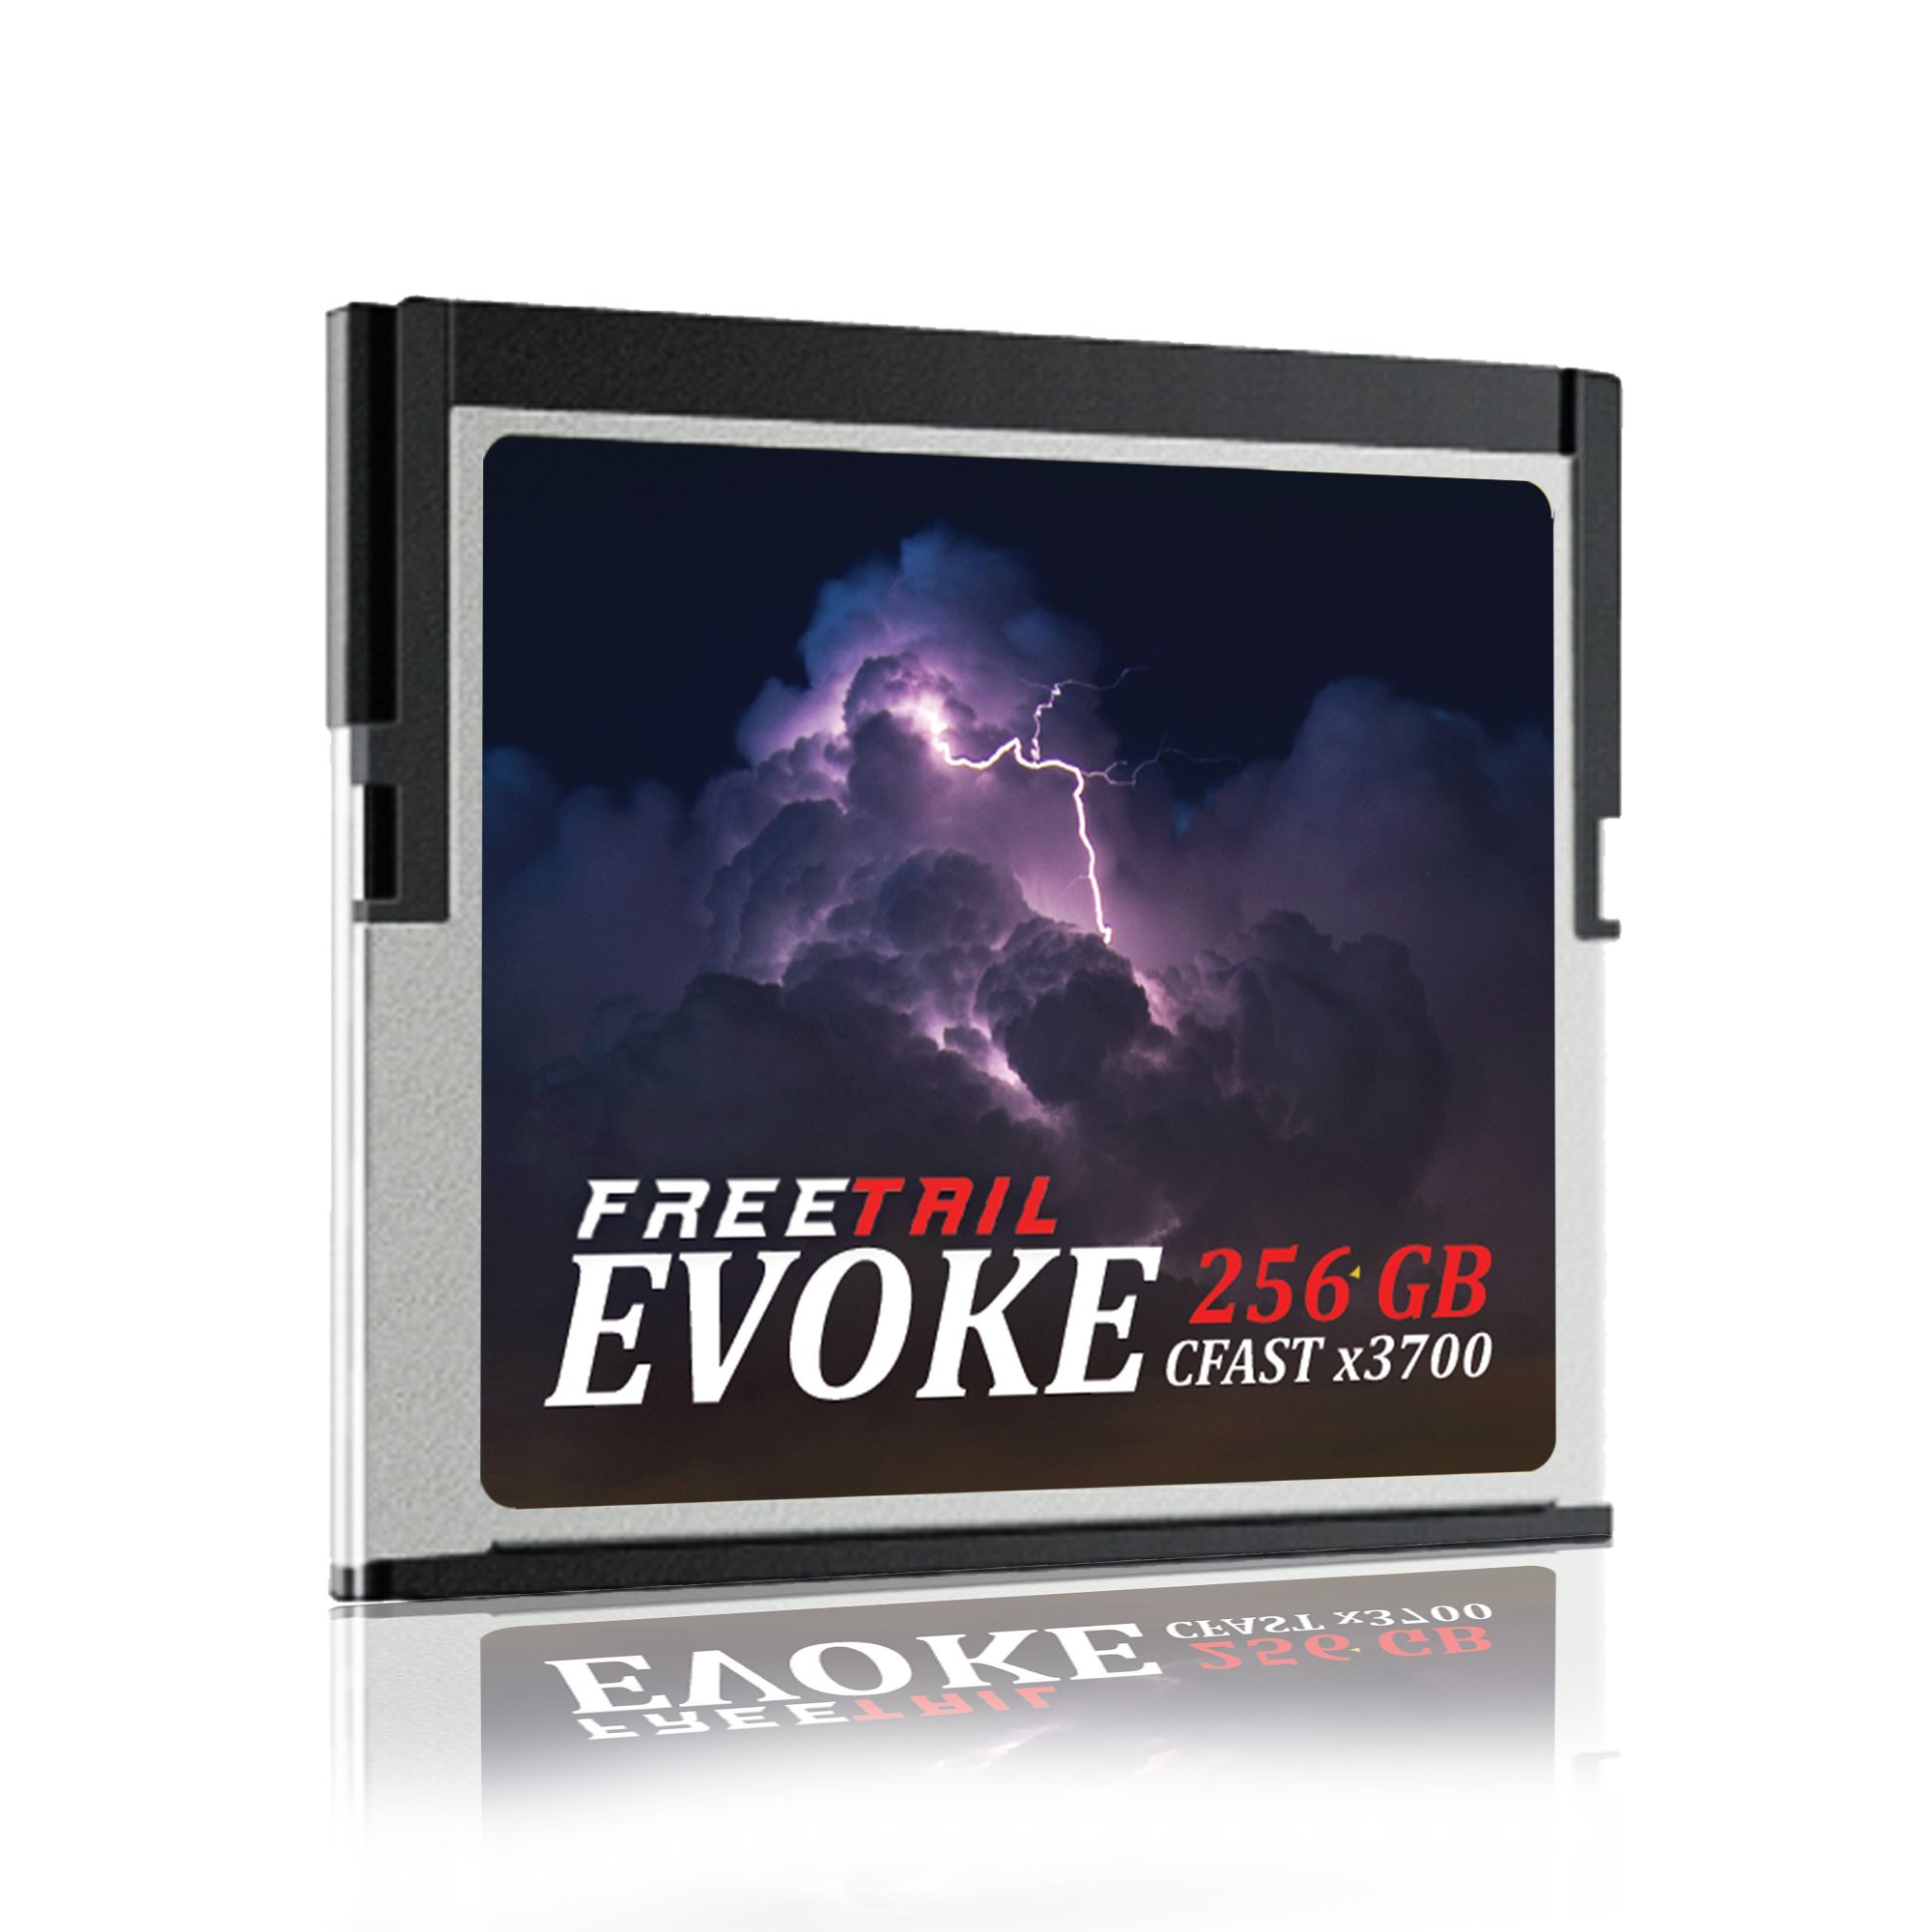 FreeTail EVOKE 3700x 256GB CFast 2.0 Memory Card, Up To 560MB/s, VPG-130 (FTCF256A37) by FreeTail Tech (Image #3)